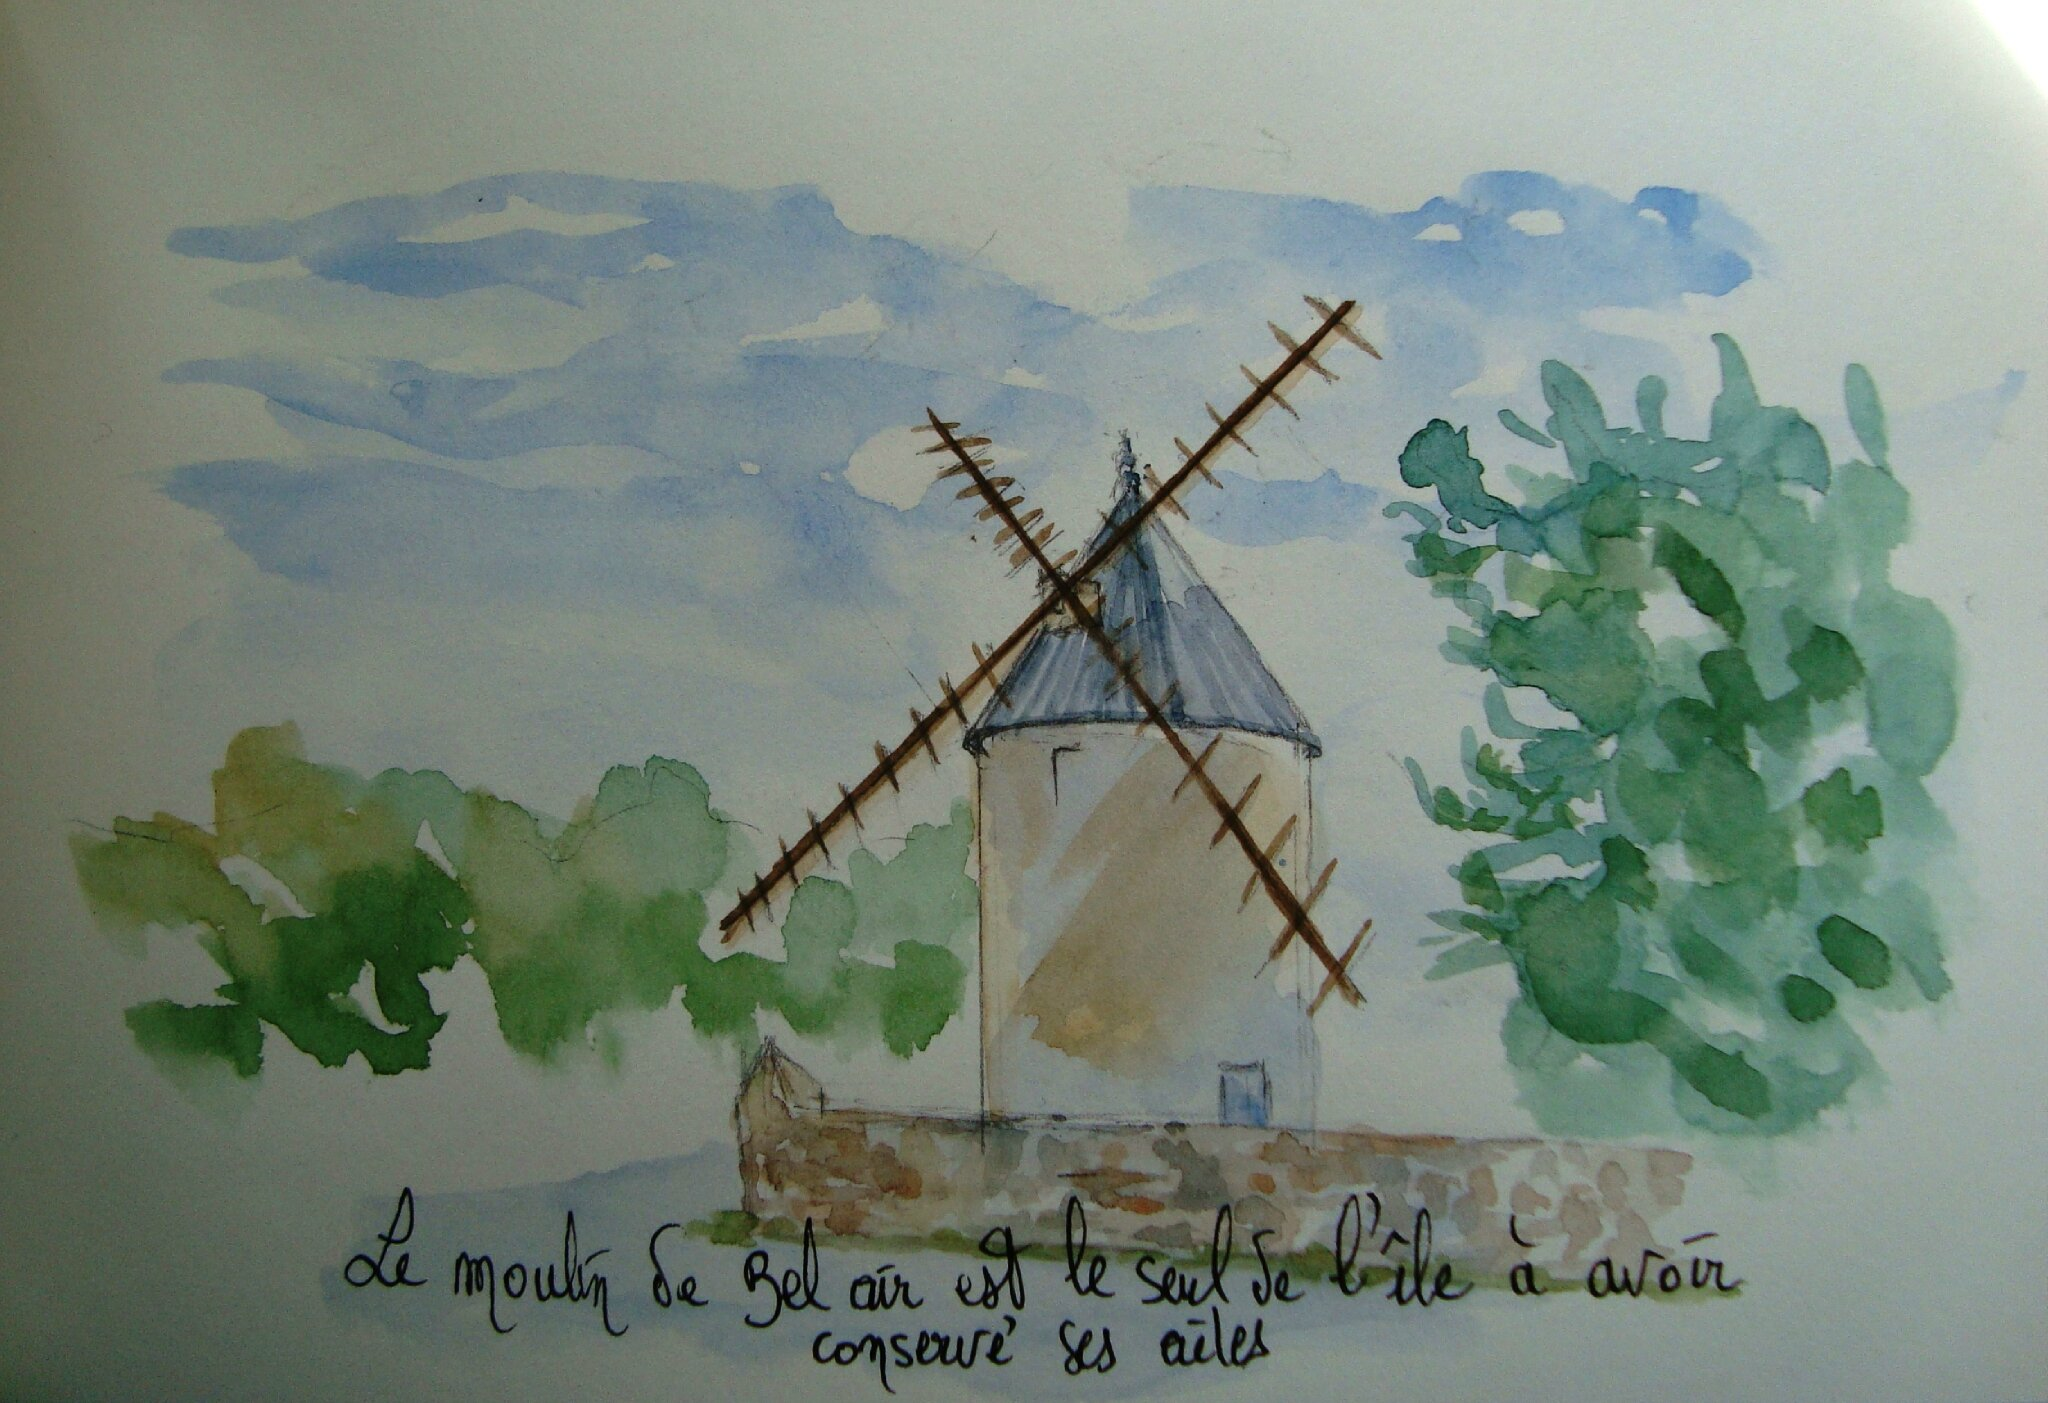 75 Le moulin e Bel Air